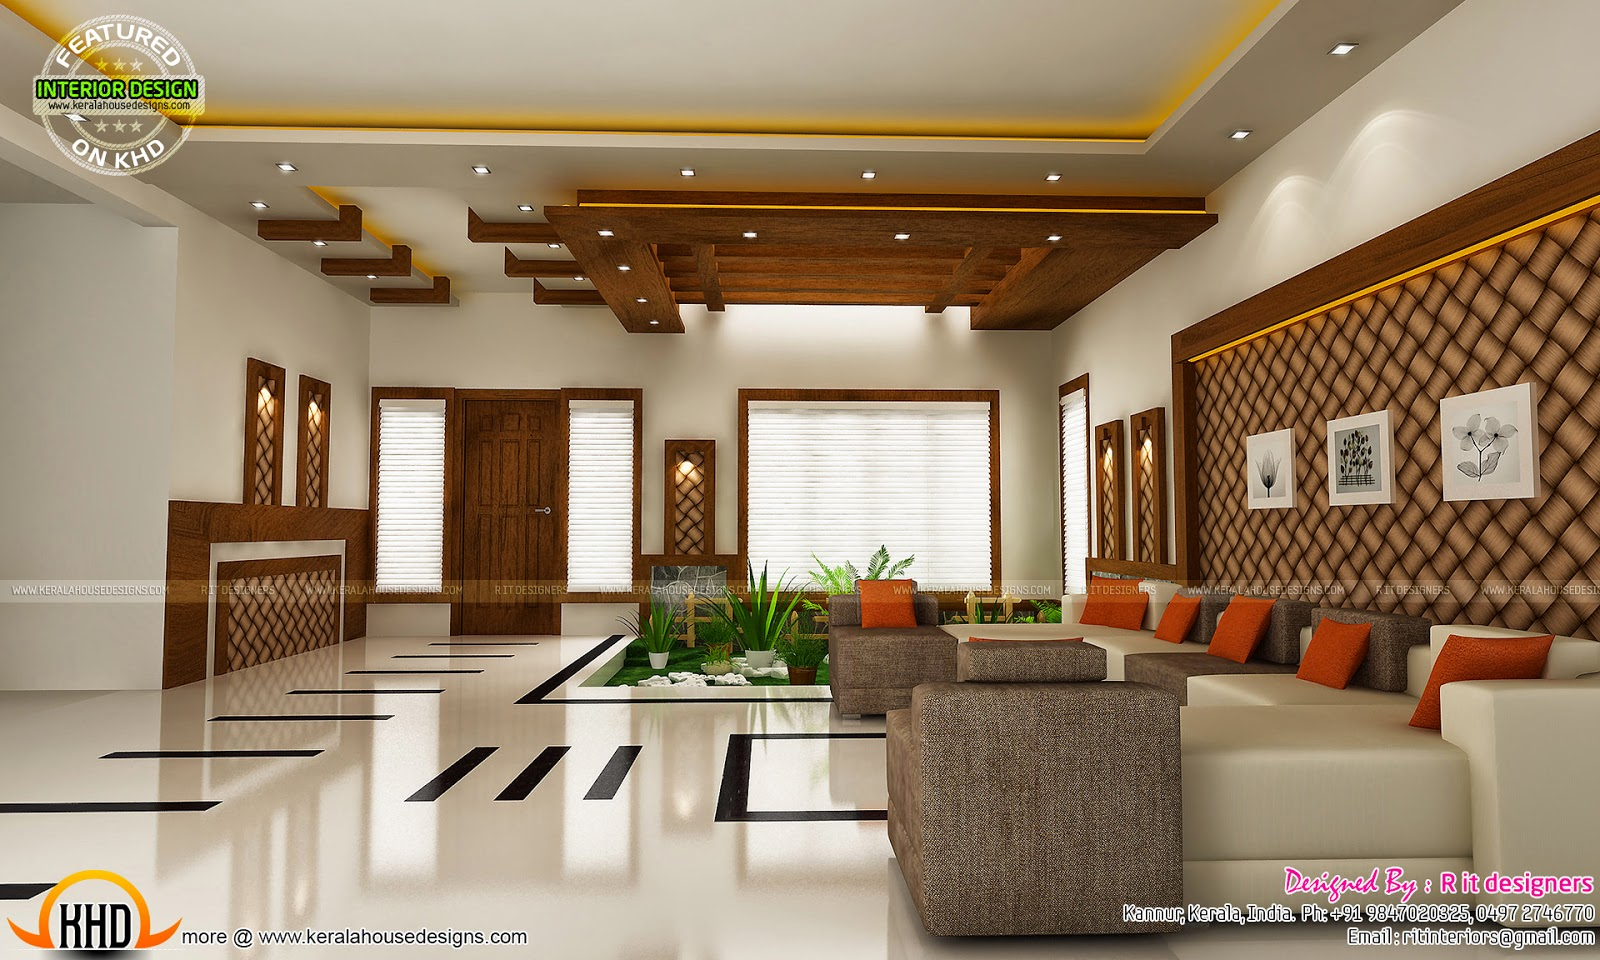 Modern and unique dining kitchen interior kerala home for New house interior designs